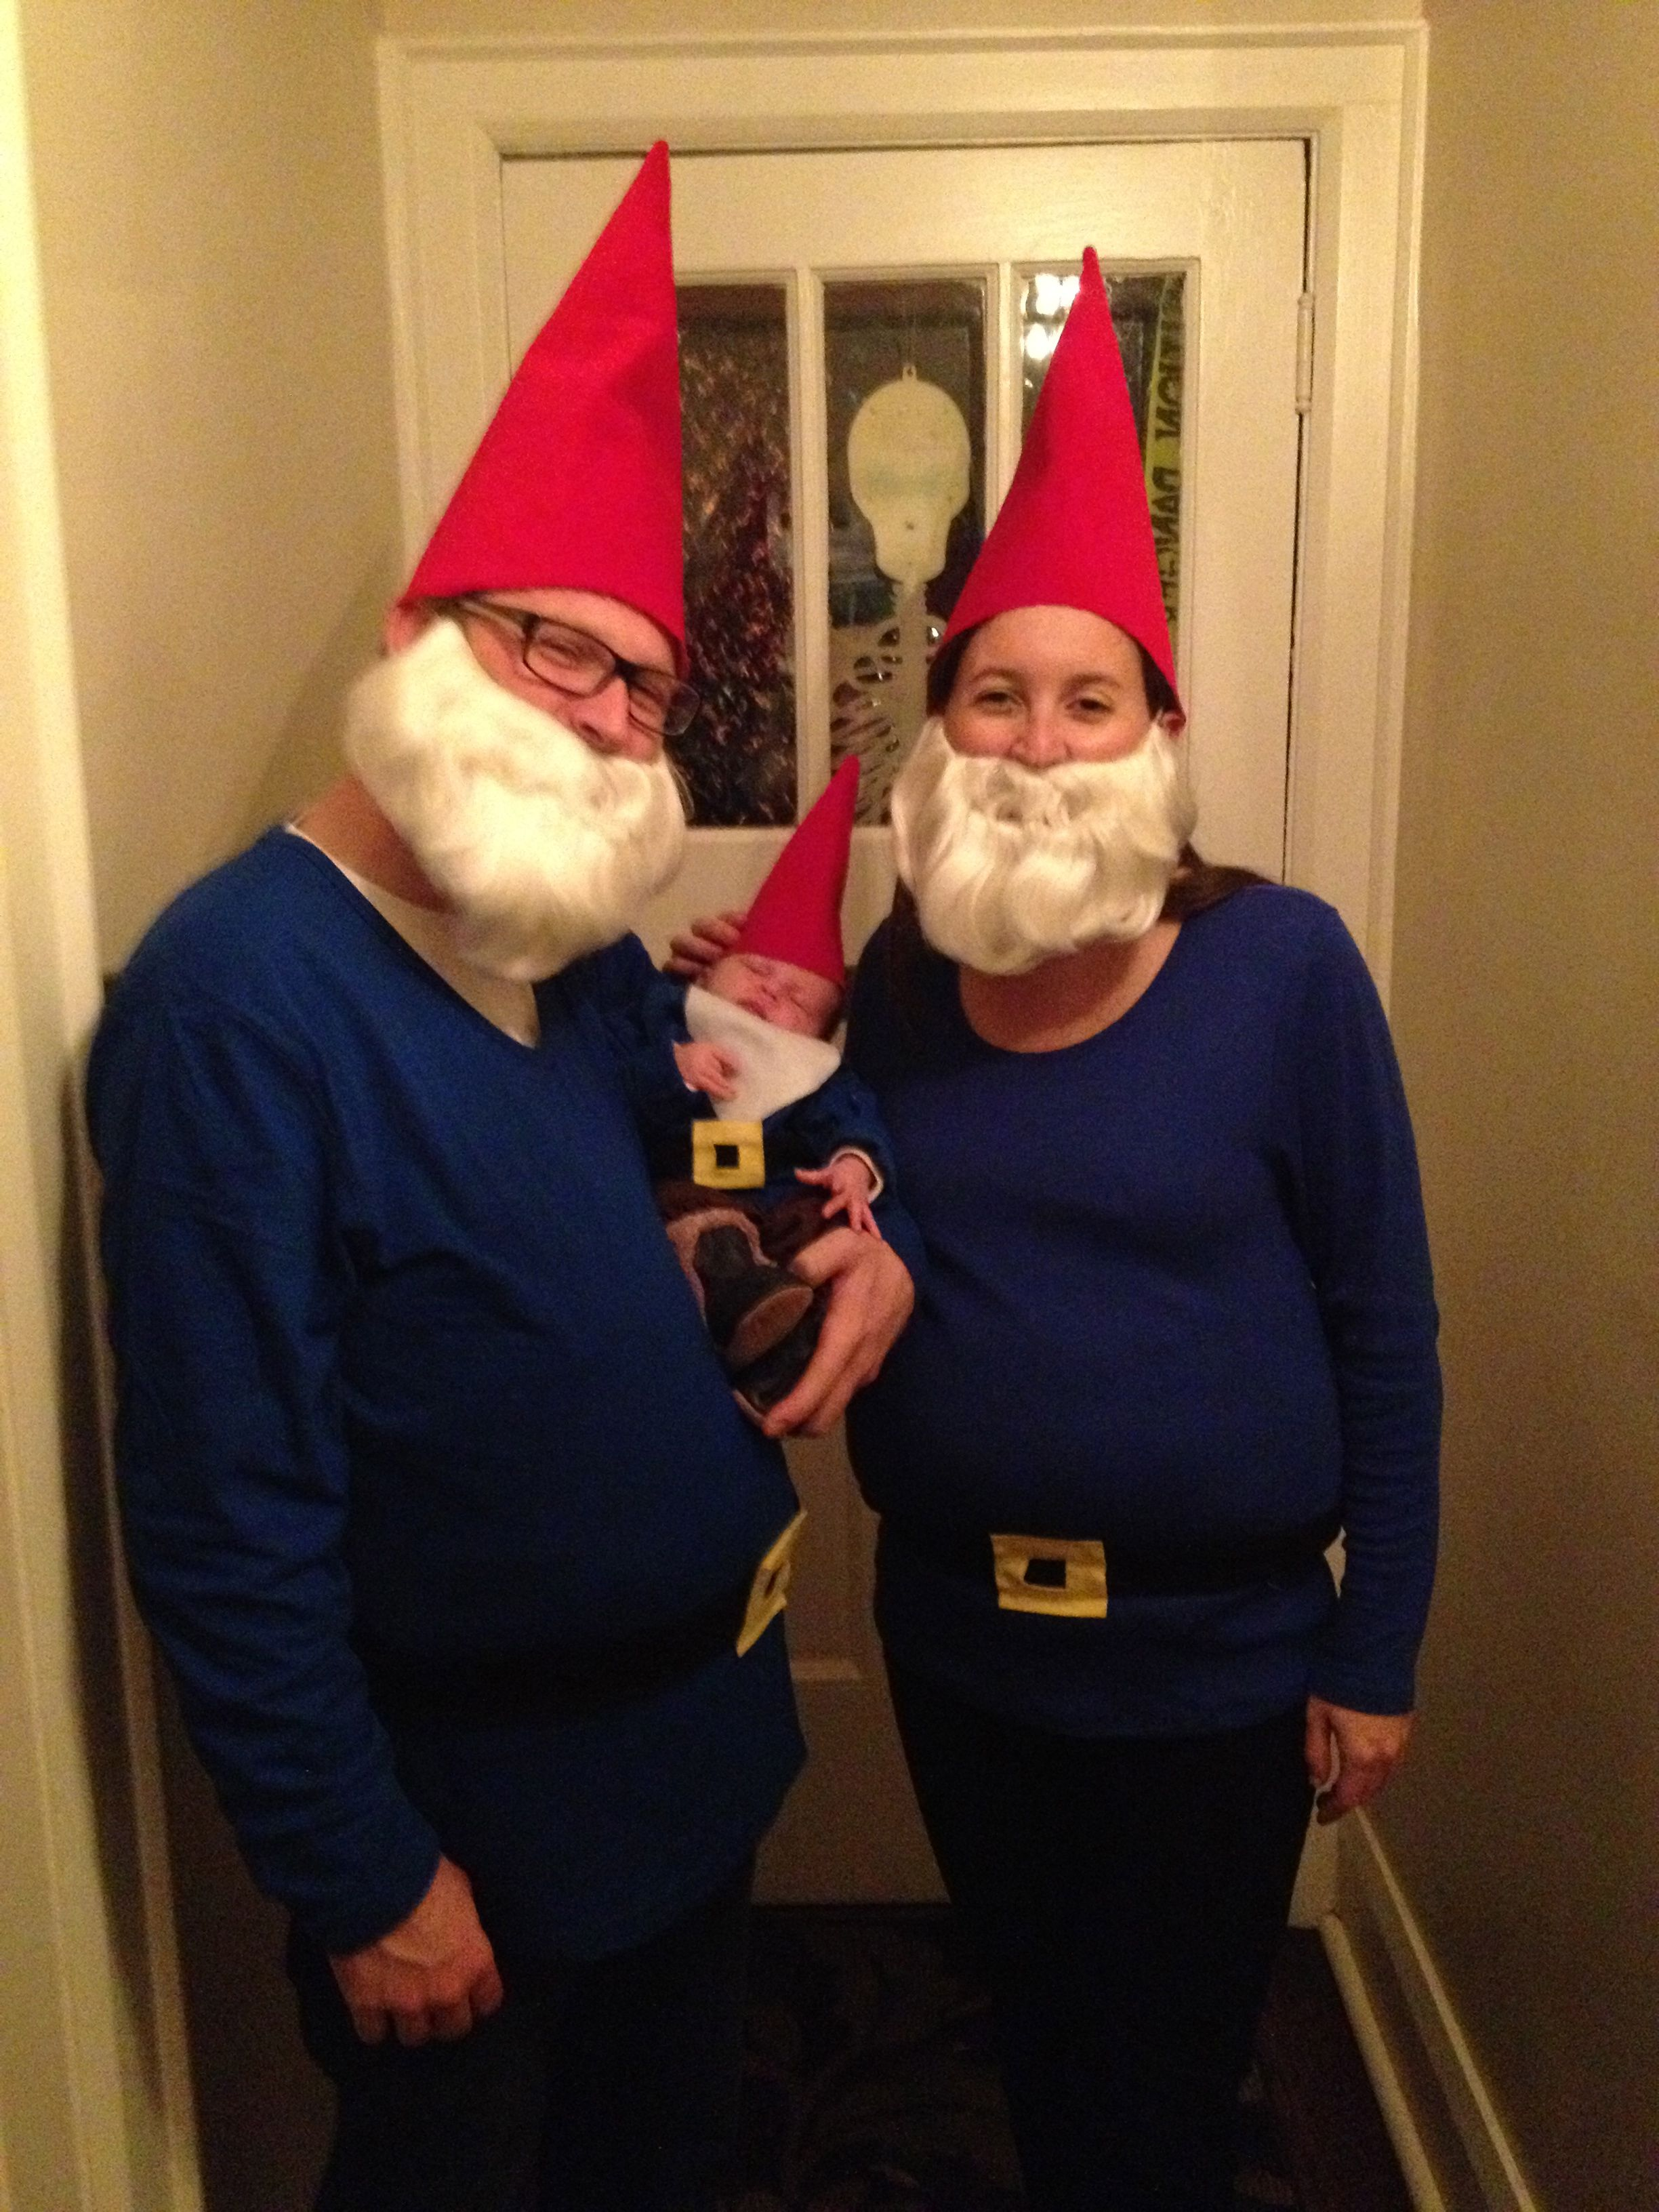 Gnome halloween costume october 31 ideas pinterest halloween 12 clever diy halloween costumes that wont cost a fortune solutioingenieria Image collections